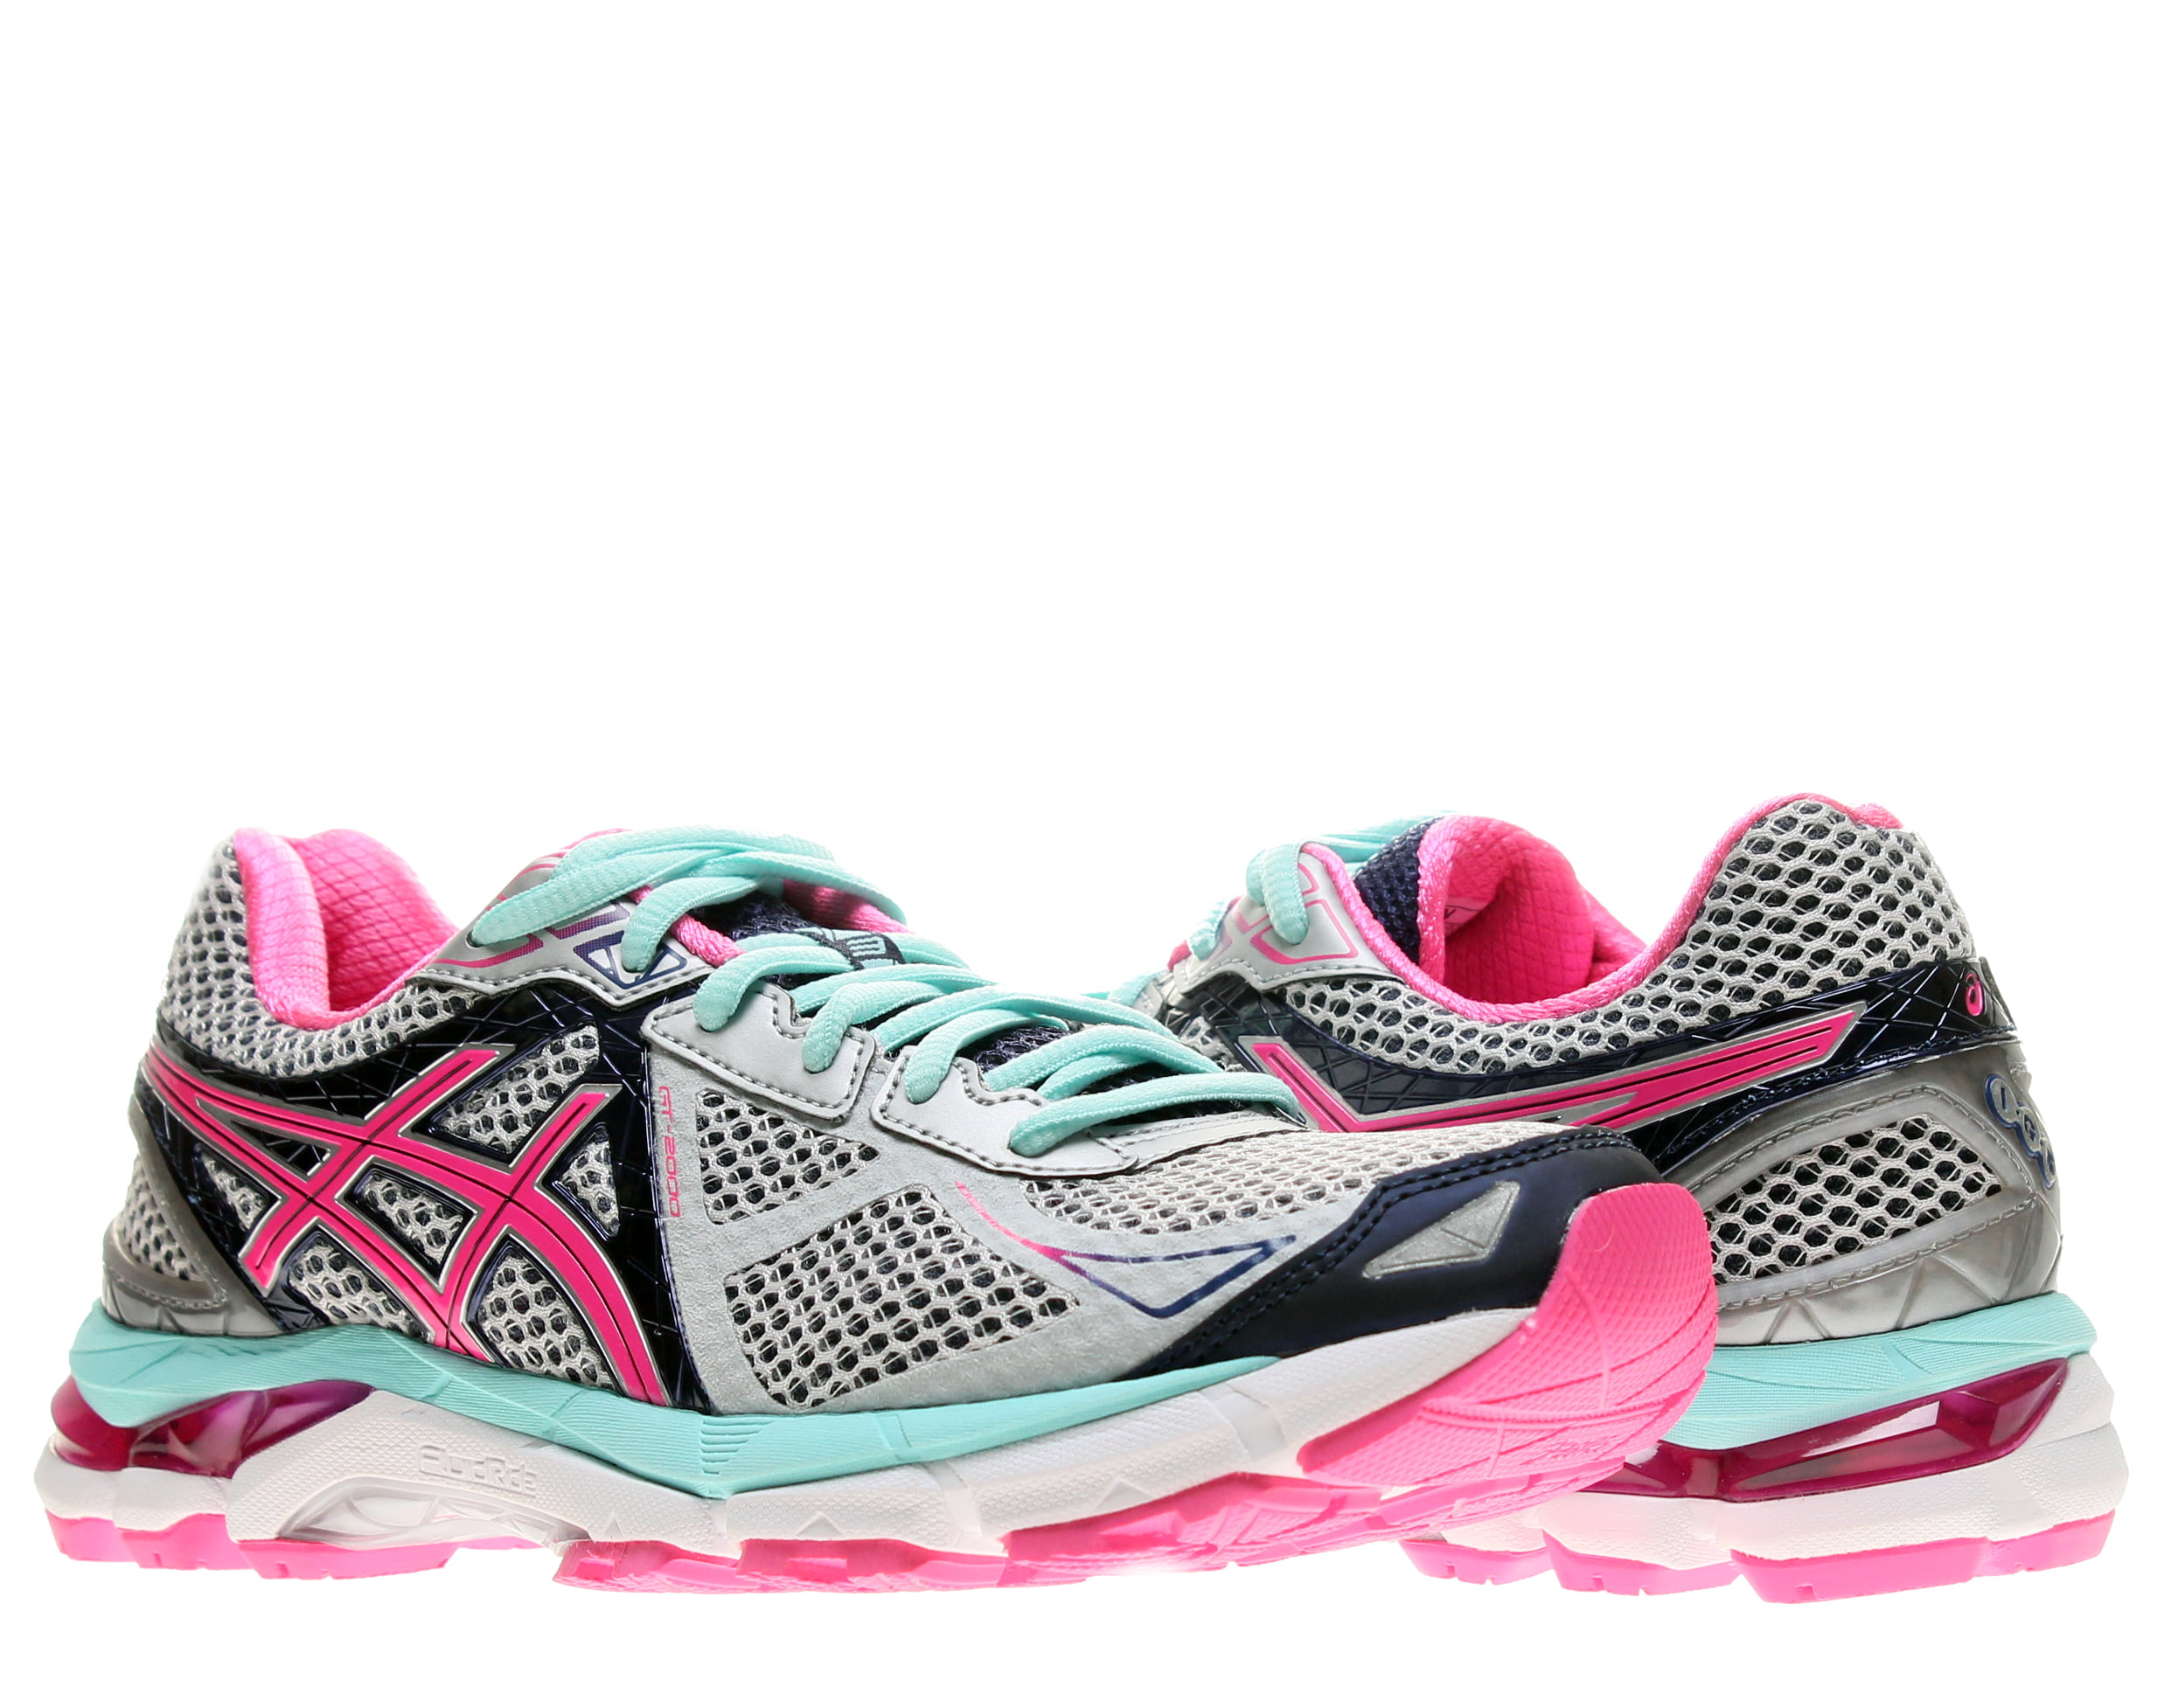 Asics GT-2000 3 Lightning Hot Pink Women's Running Shoes T550N-9335 by ASICS America Corporation